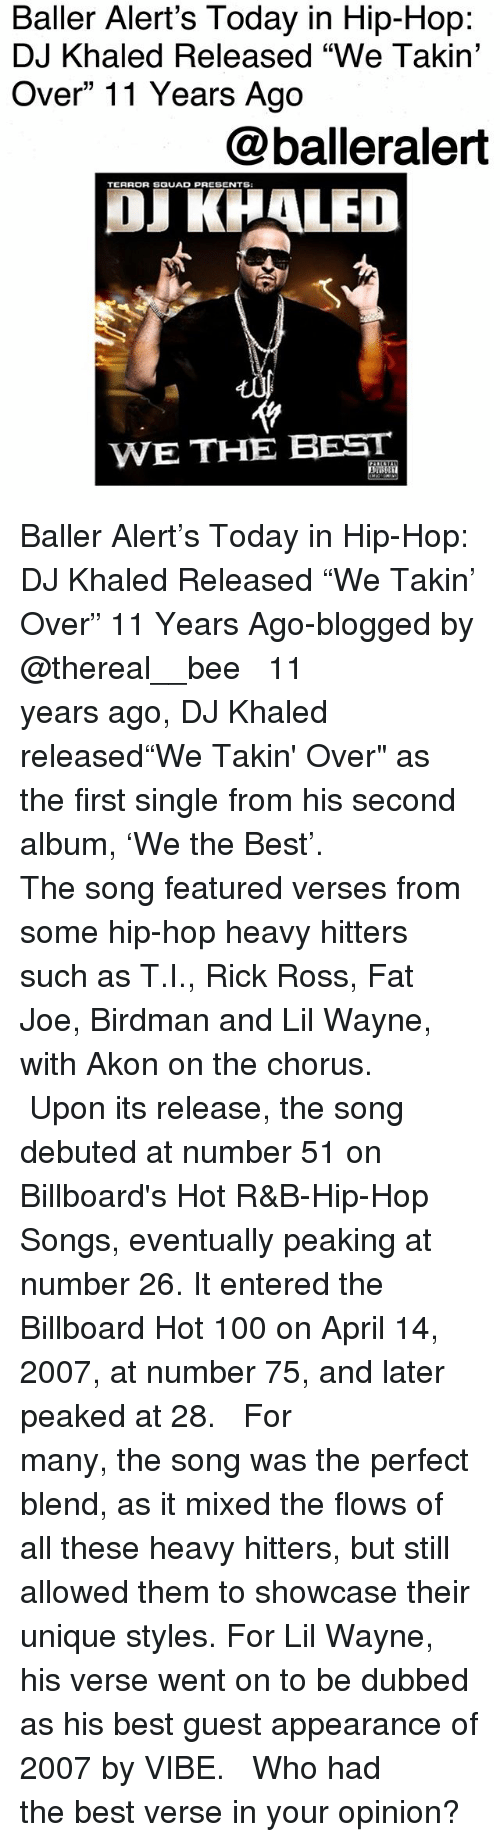 """debuted: Baller Alert's Today in Hip-Hop:  DJ Khaled Released """"We Takin'  Over"""" 11 Years Ago  @balleralert  TERROR SGUAD PRESENTS  OJ KHALED  WE THE BEST Baller Alert's Today in Hip-Hop: DJ Khaled Released """"We Takin' Over"""" 11 Years Ago-blogged by @thereal__bee ⠀⠀⠀⠀⠀⠀⠀⠀⠀ ⠀⠀ 11 years ago, DJ Khaled released""""We Takin' Over"""" as the first single from his second album, 'We the Best'. ⠀⠀⠀⠀⠀⠀⠀⠀⠀ ⠀⠀ The song featured verses from some hip-hop heavy hitters such as T.I., Rick Ross, Fat Joe, Birdman and Lil Wayne, with Akon on the chorus. ⠀⠀⠀⠀⠀⠀⠀⠀⠀ ⠀⠀ Upon its release, the song debuted at number 51 on Billboard's Hot R&B-Hip-Hop Songs, eventually peaking at number 26. It entered the Billboard Hot 100 on April 14, 2007, at number 75, and later peaked at 28. ⠀⠀⠀⠀⠀⠀⠀⠀⠀ ⠀⠀ For many, the song was the perfect blend, as it mixed the flows of all these heavy hitters, but still allowed them to showcase their unique styles. For Lil Wayne, his verse went on to be dubbed as his best guest appearance of 2007 by VIBE. ⠀⠀⠀⠀⠀⠀⠀⠀⠀ ⠀⠀ Who had the best verse in your opinion?"""